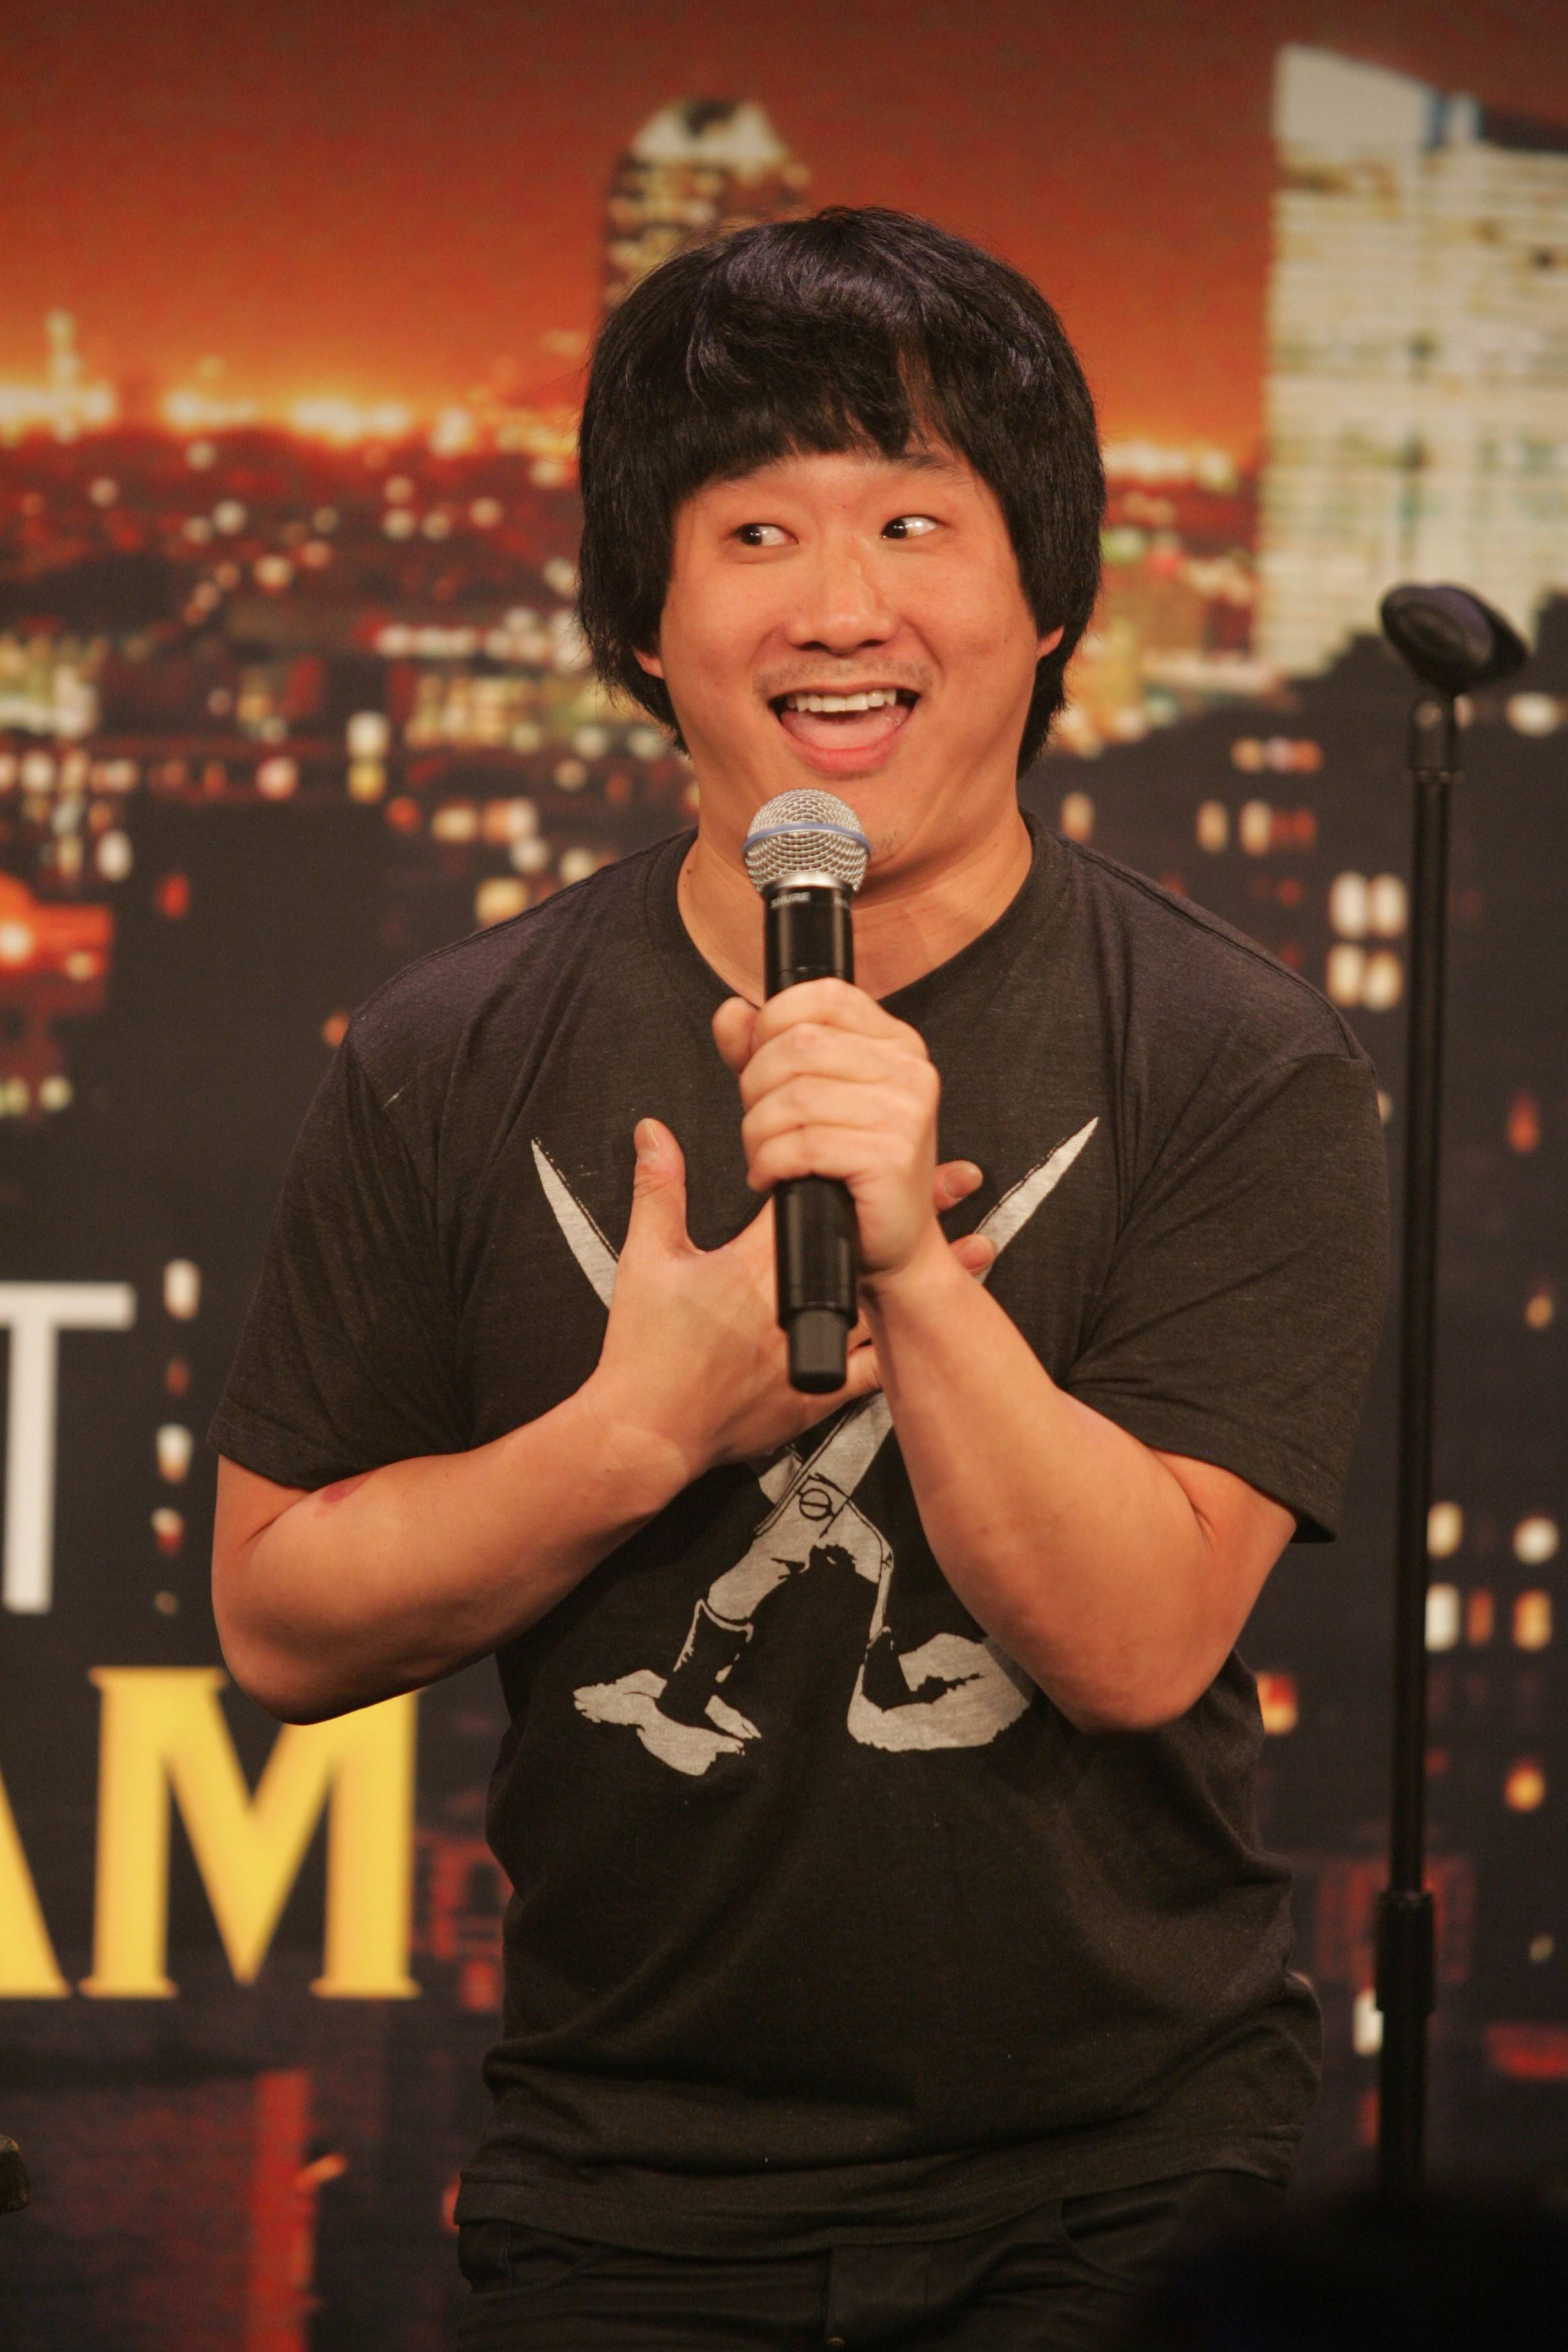 Comedian Bobby Lee performs at the Improv Comedy Showcase in Schaumburg.